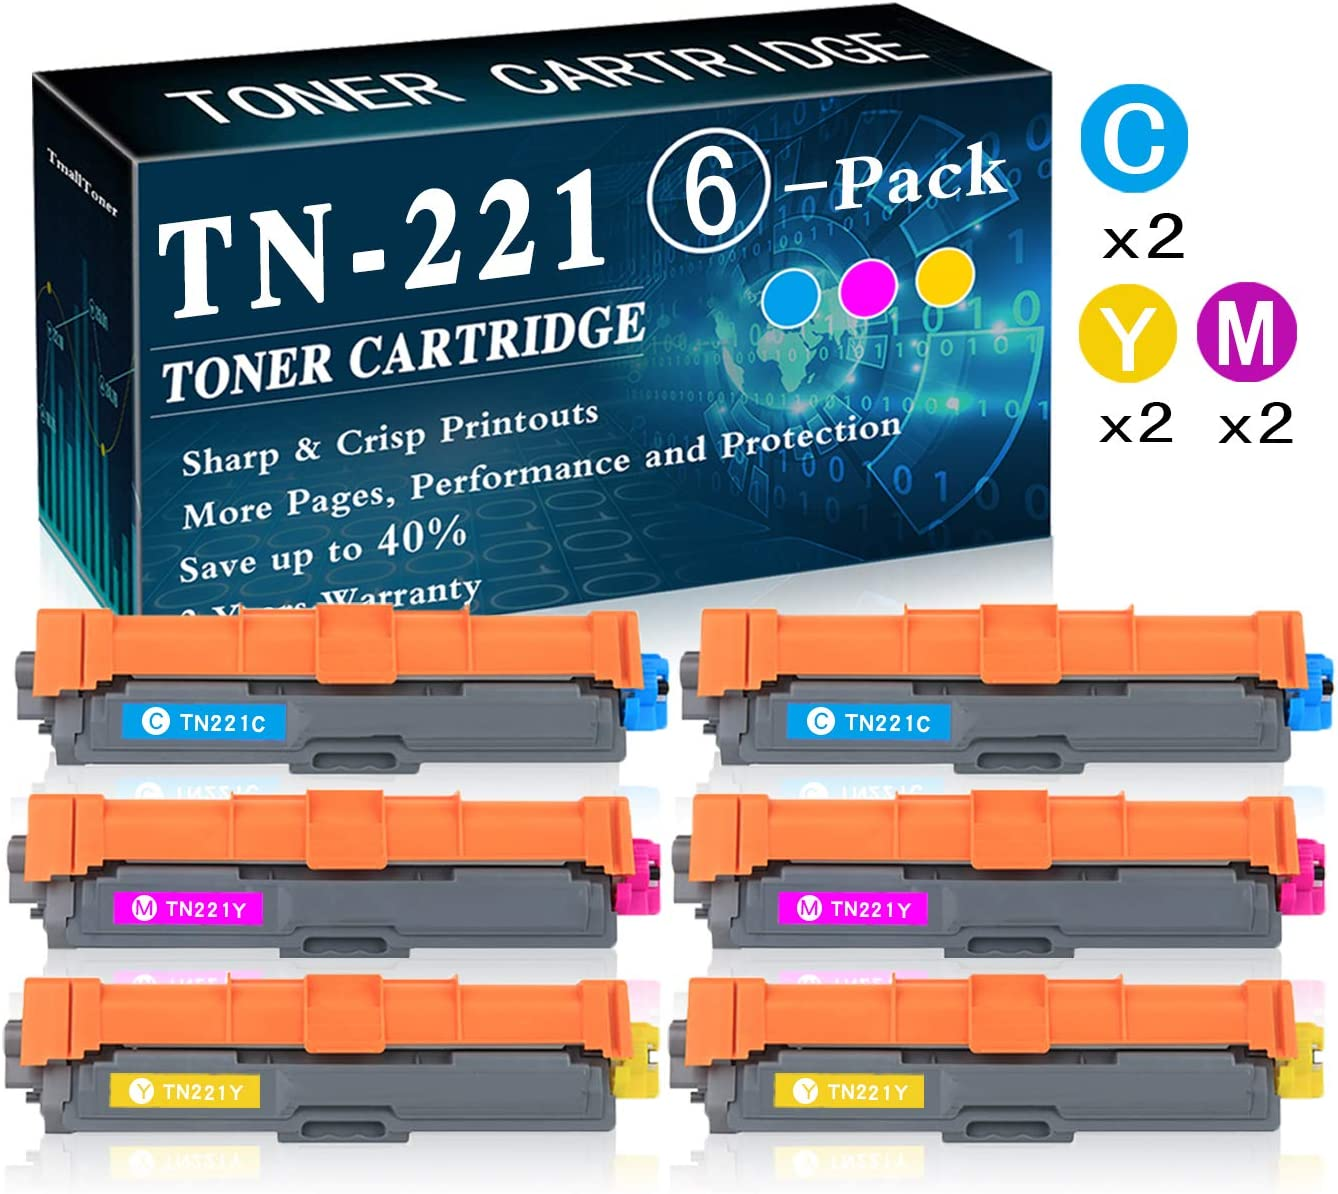 6-Pack (2C+2M+2Y) TN-221 Toner Cartridge Replacement for Brother Laserjet HL-3140CW HL-3150CDN MFC-9130CW MFC-9330CDW DCP-9015CDW DCP-9020CDN Printer Printer,by TmallToner